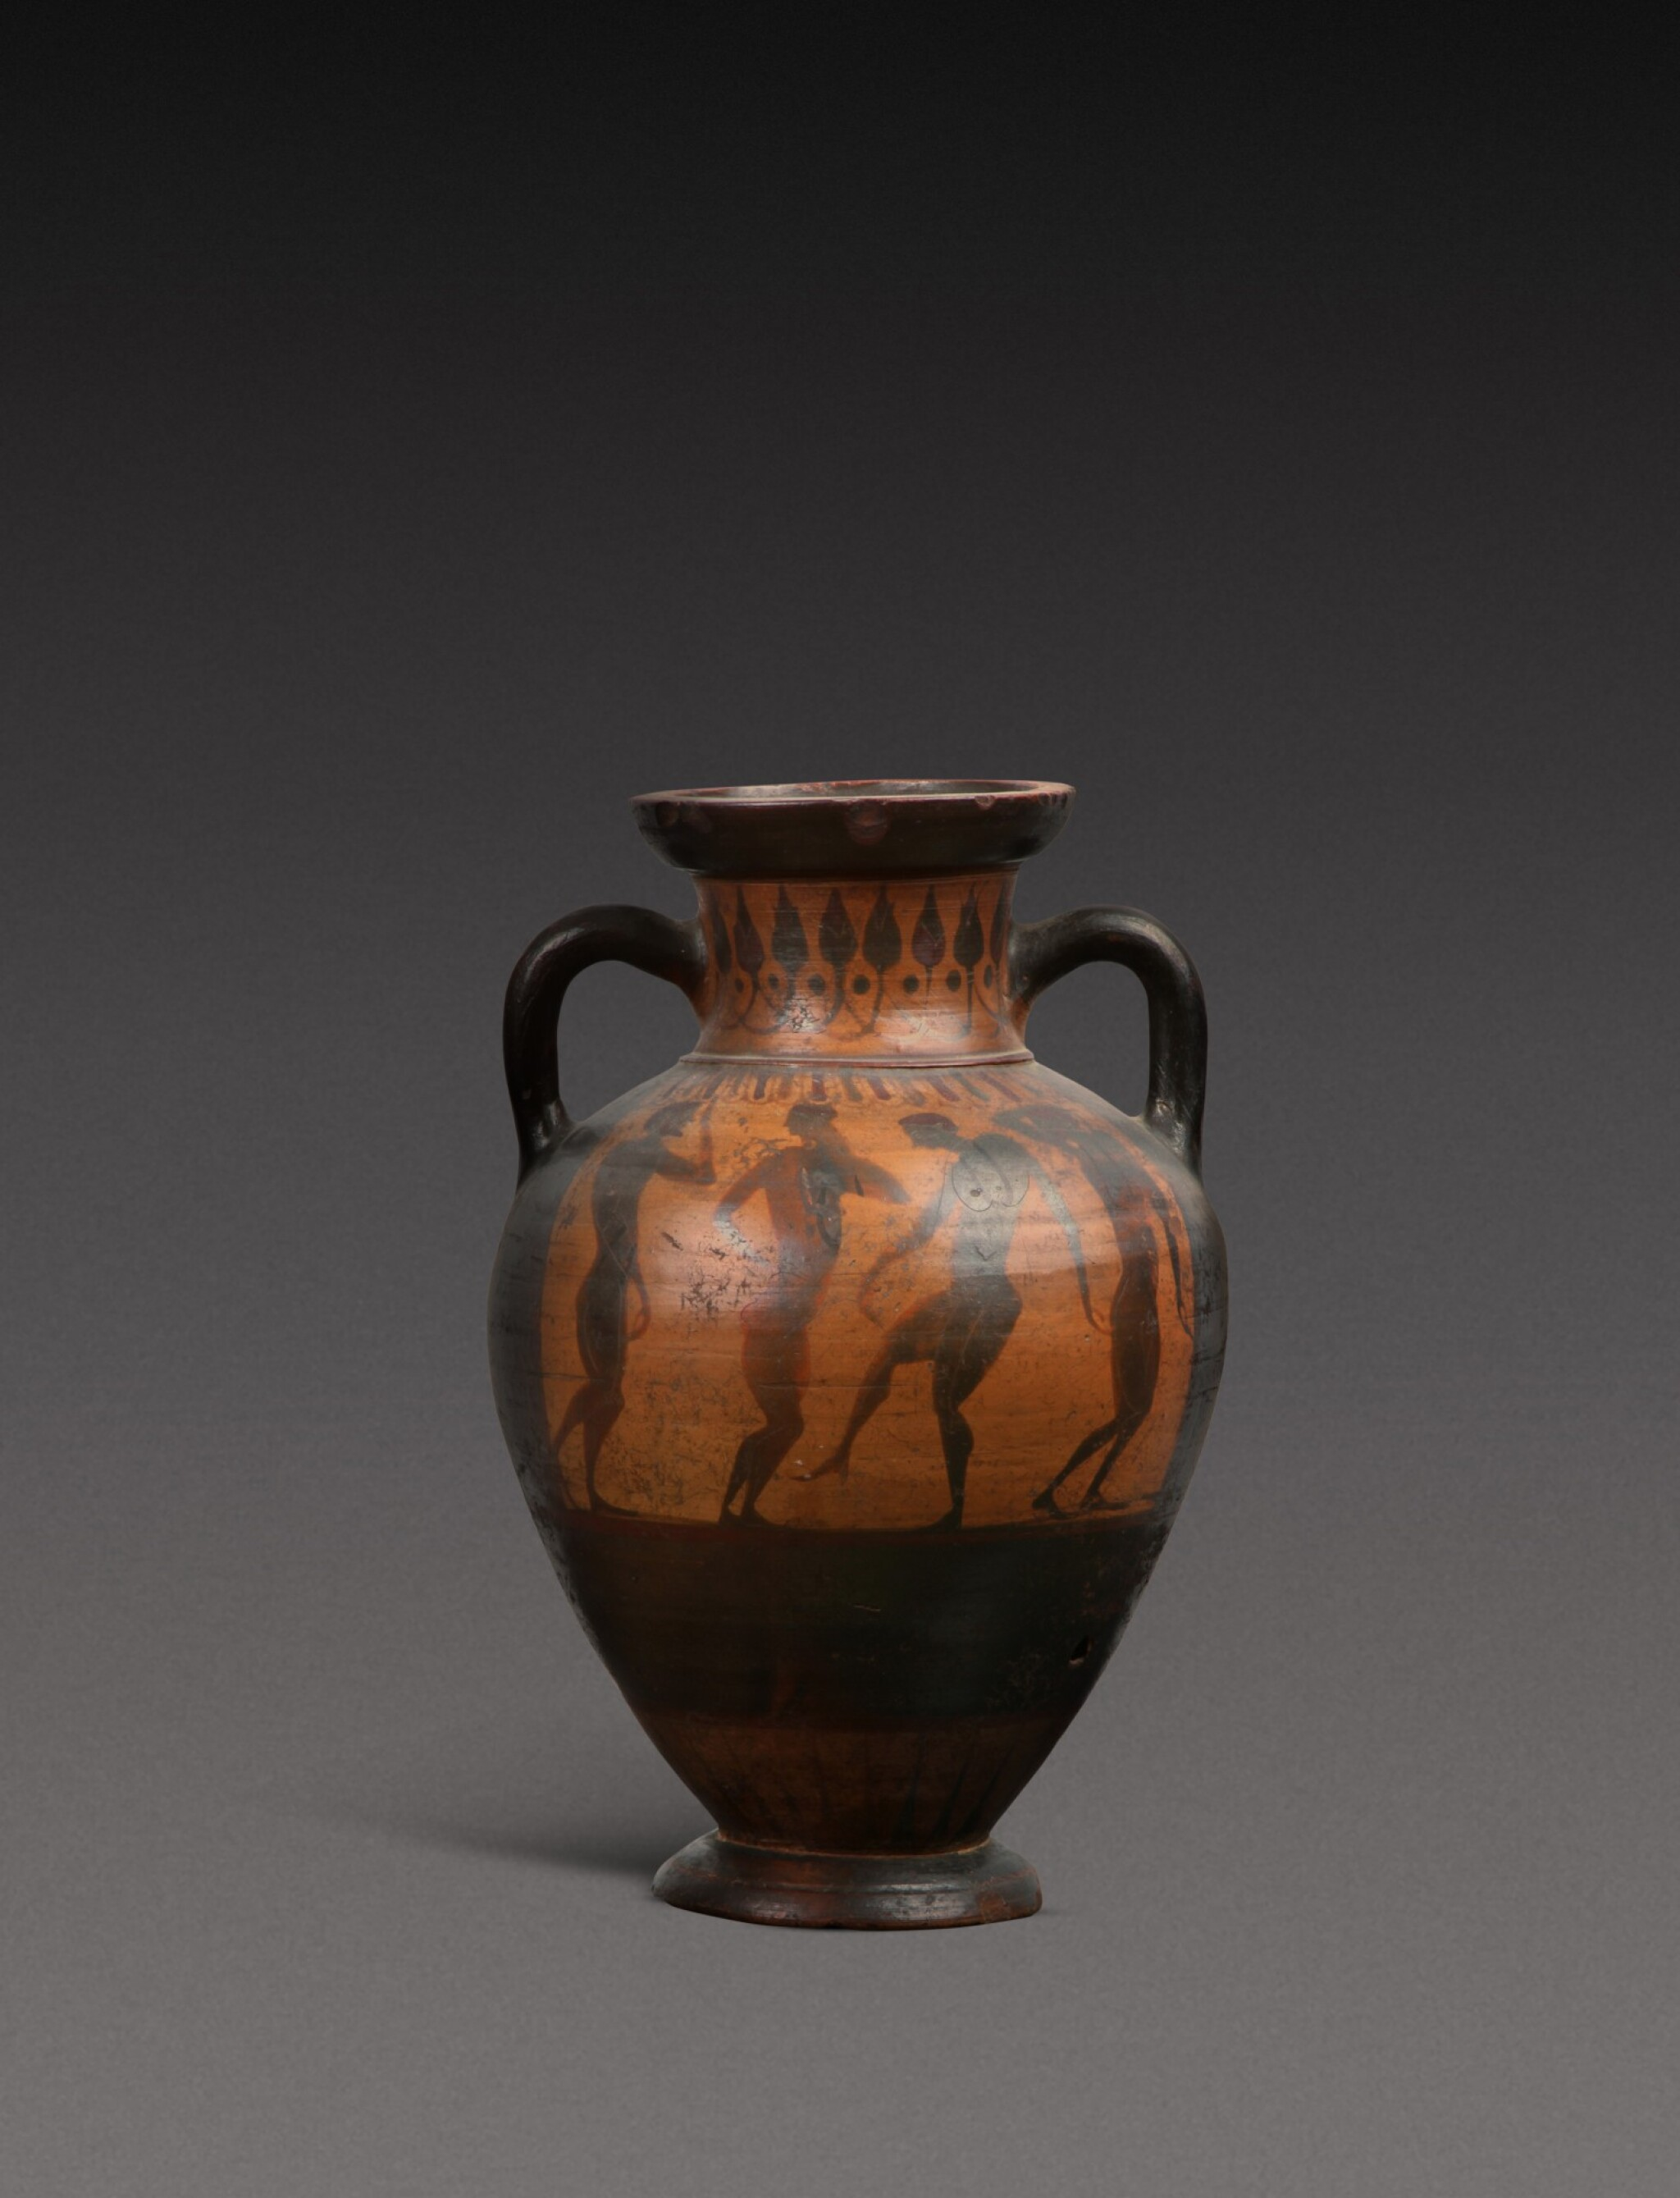 View 1 of Lot 57. An Attic Black-figured Amphora, attributed to the Princeton Group, circa 540-530 B.C..